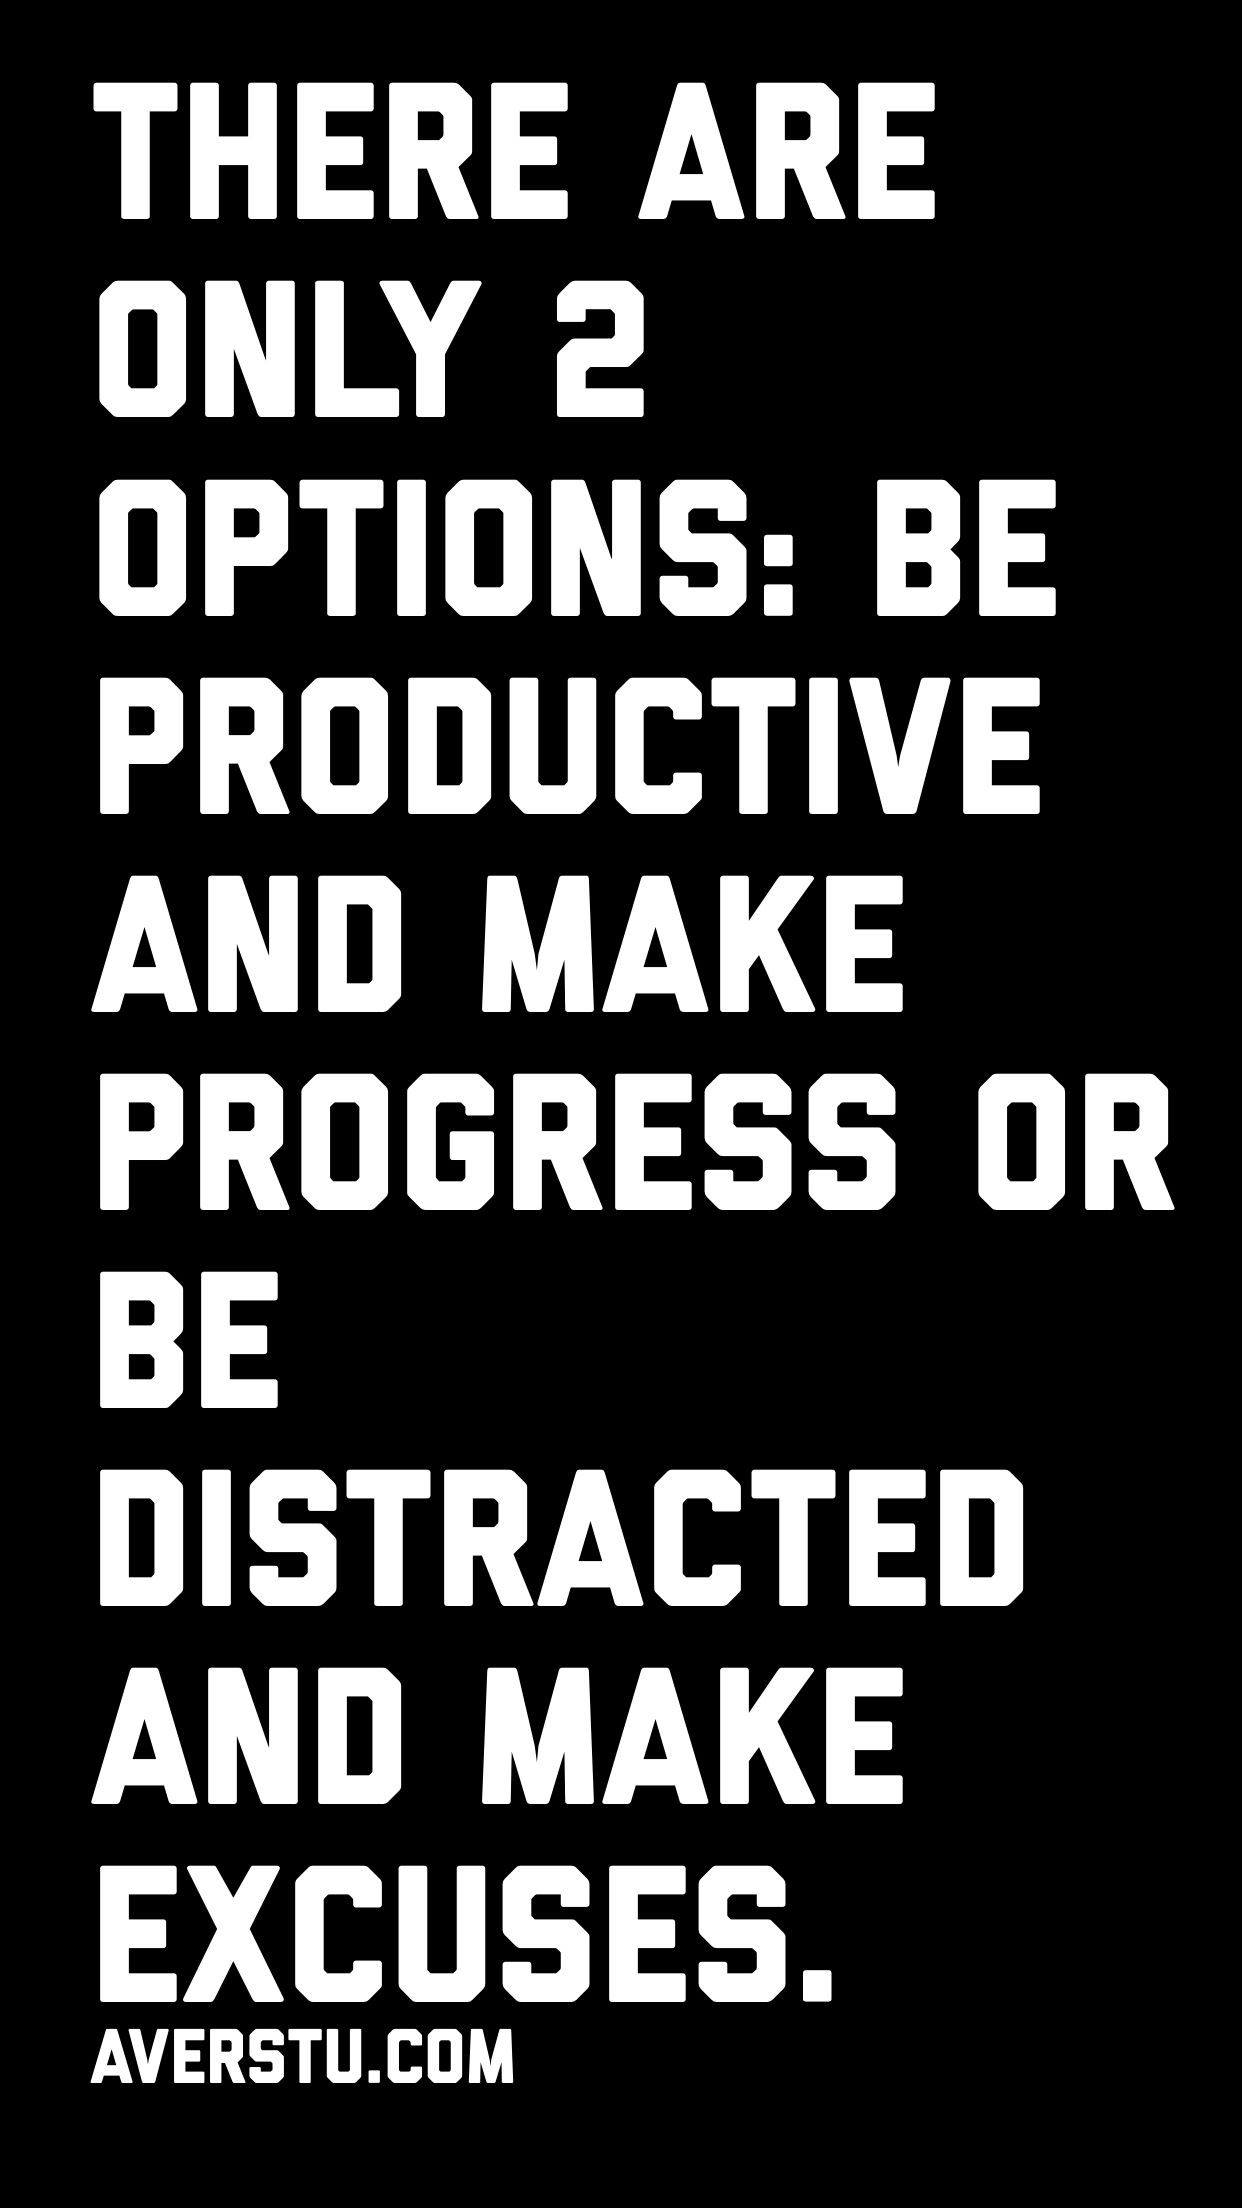 Gotta choose wisely - read simple ways to be productive: